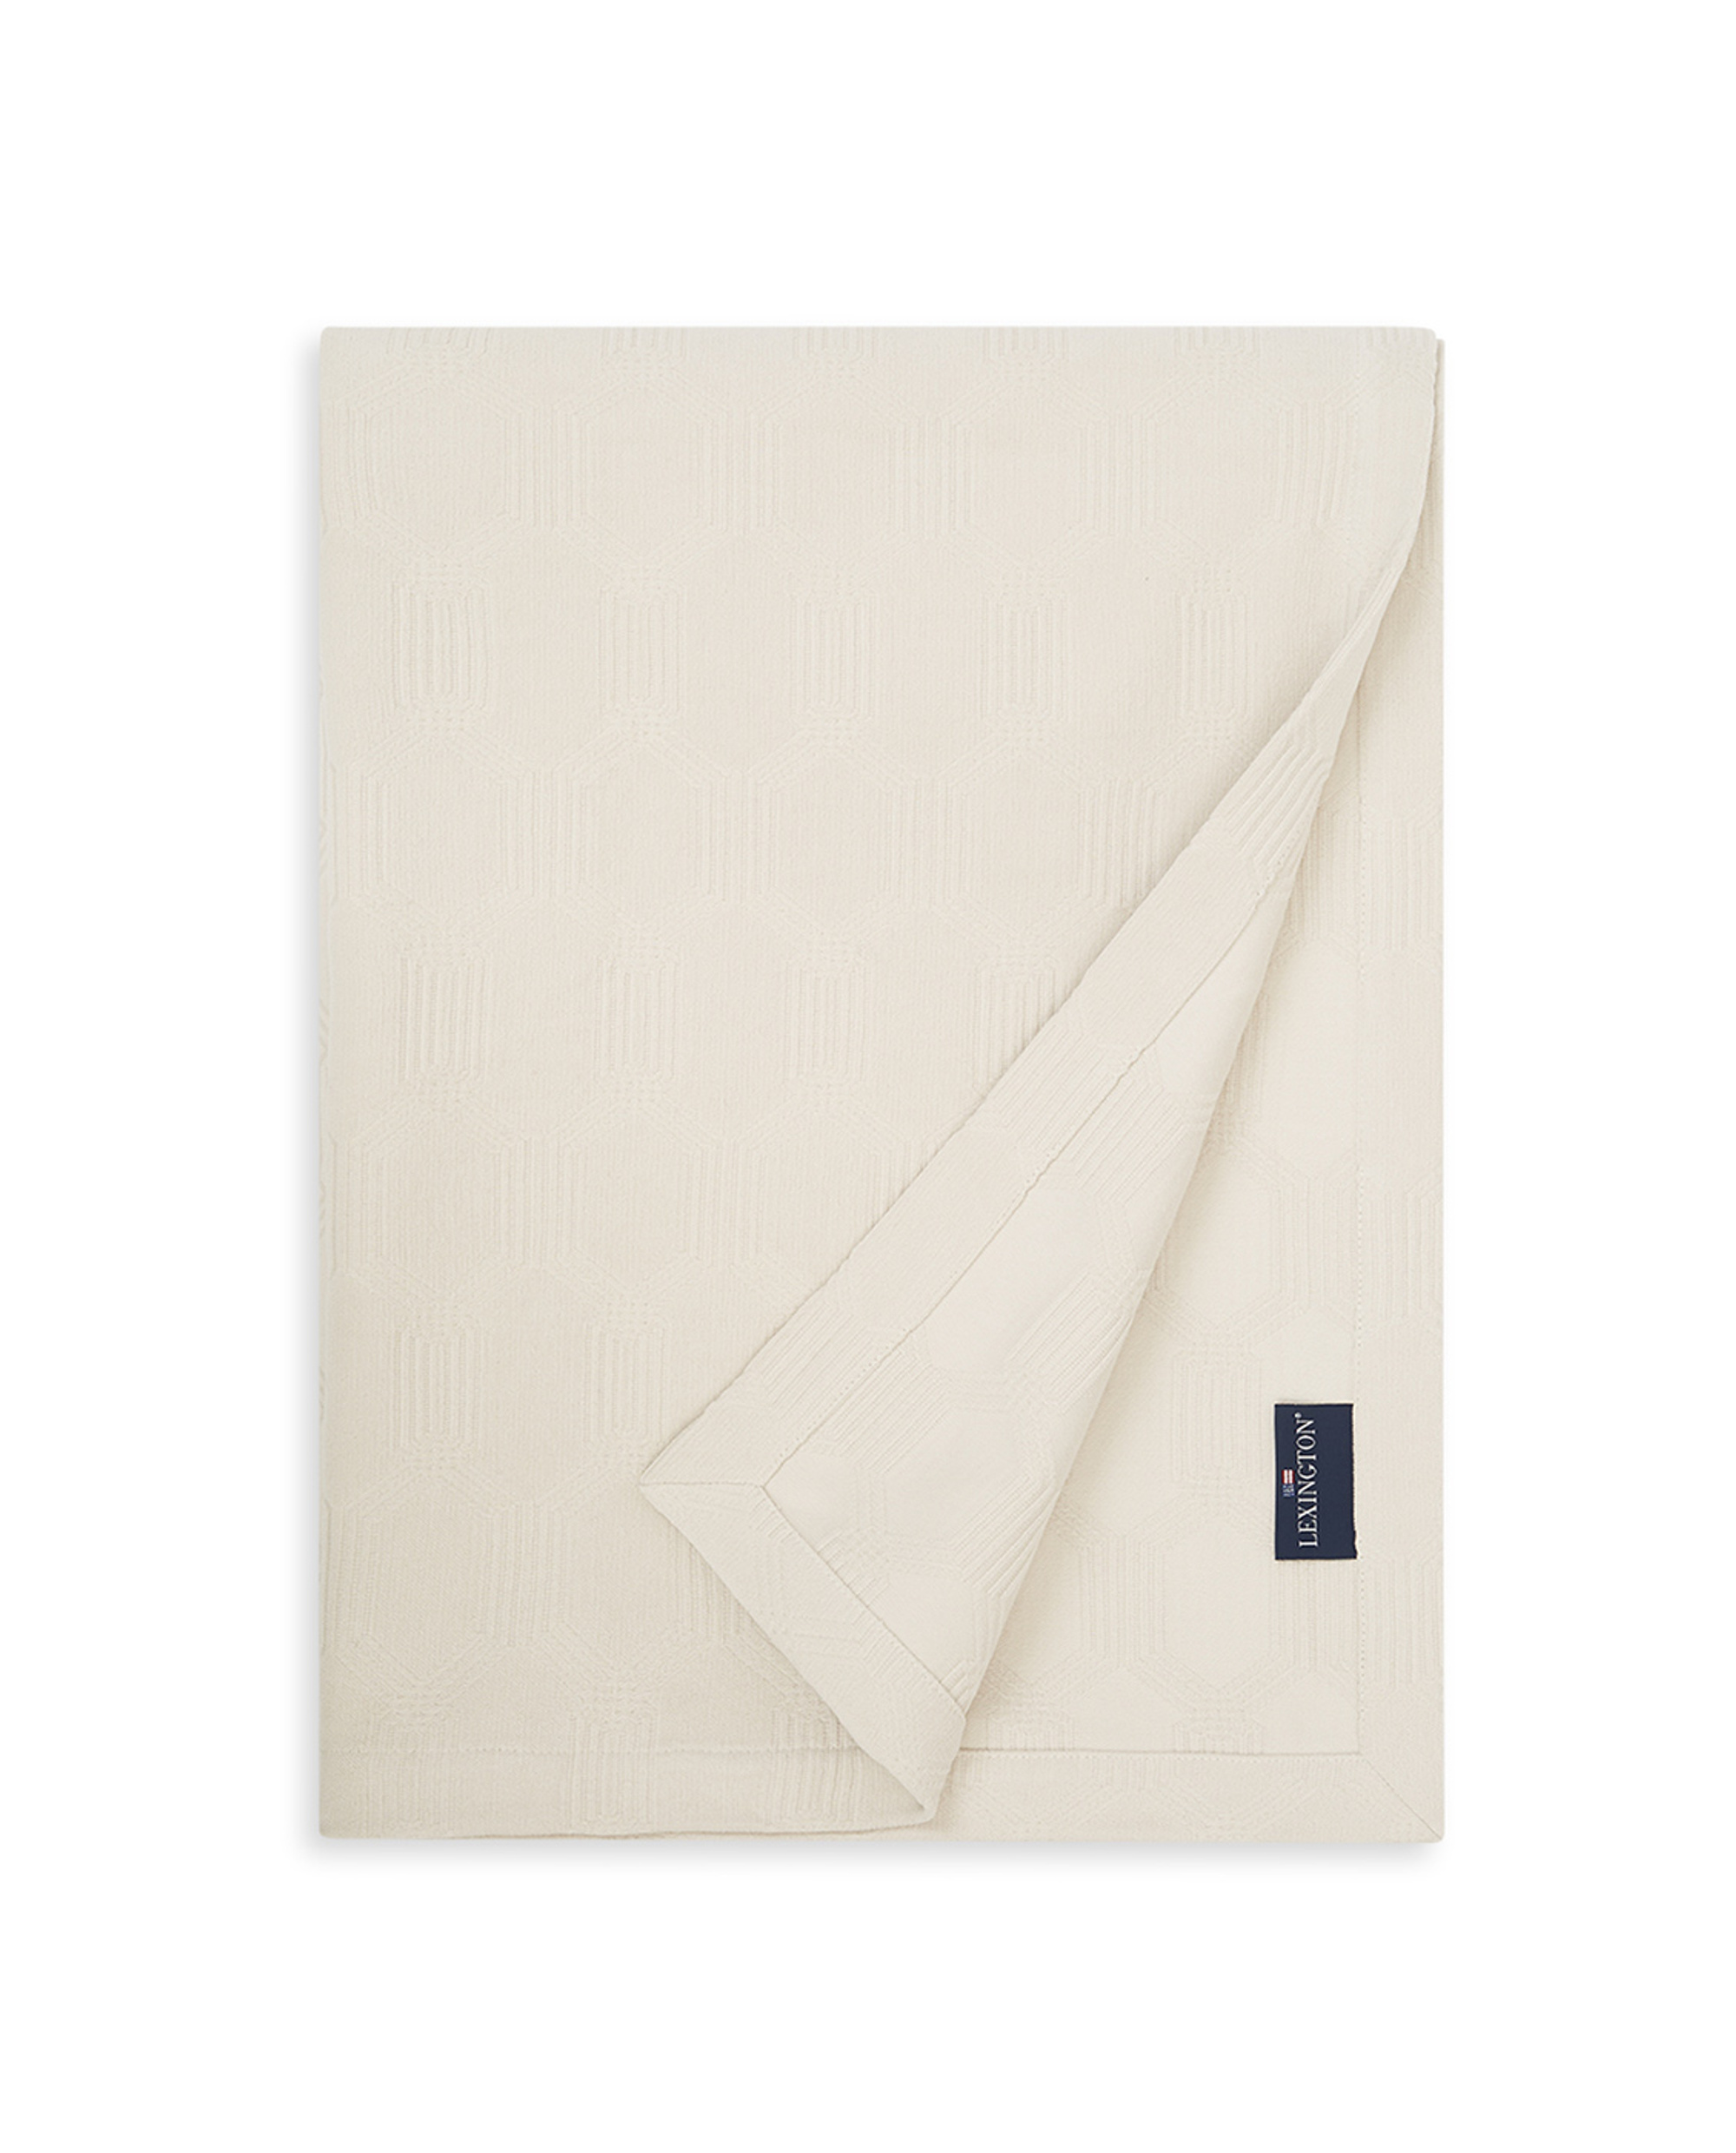 Jacquard Cotton Velvet Bedspread, Off White